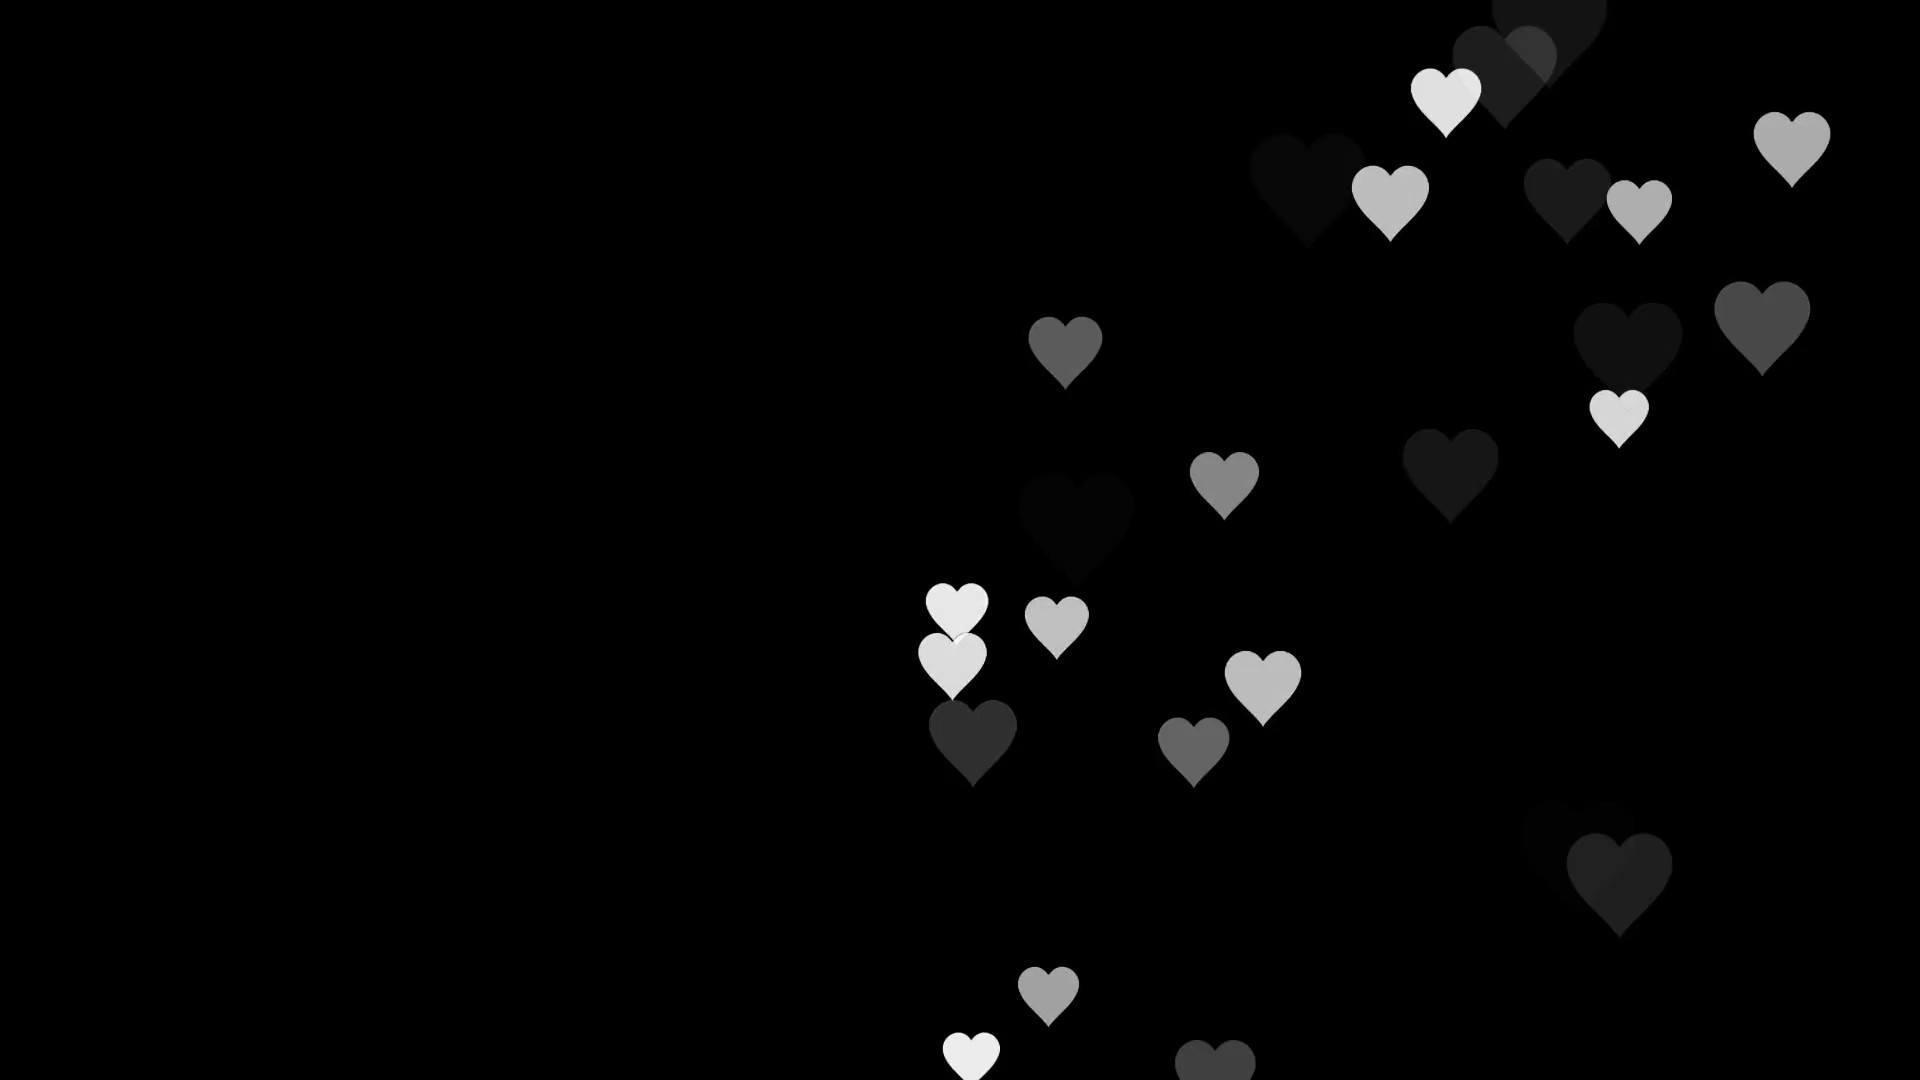 Hearts With Black Background 40 Pictures